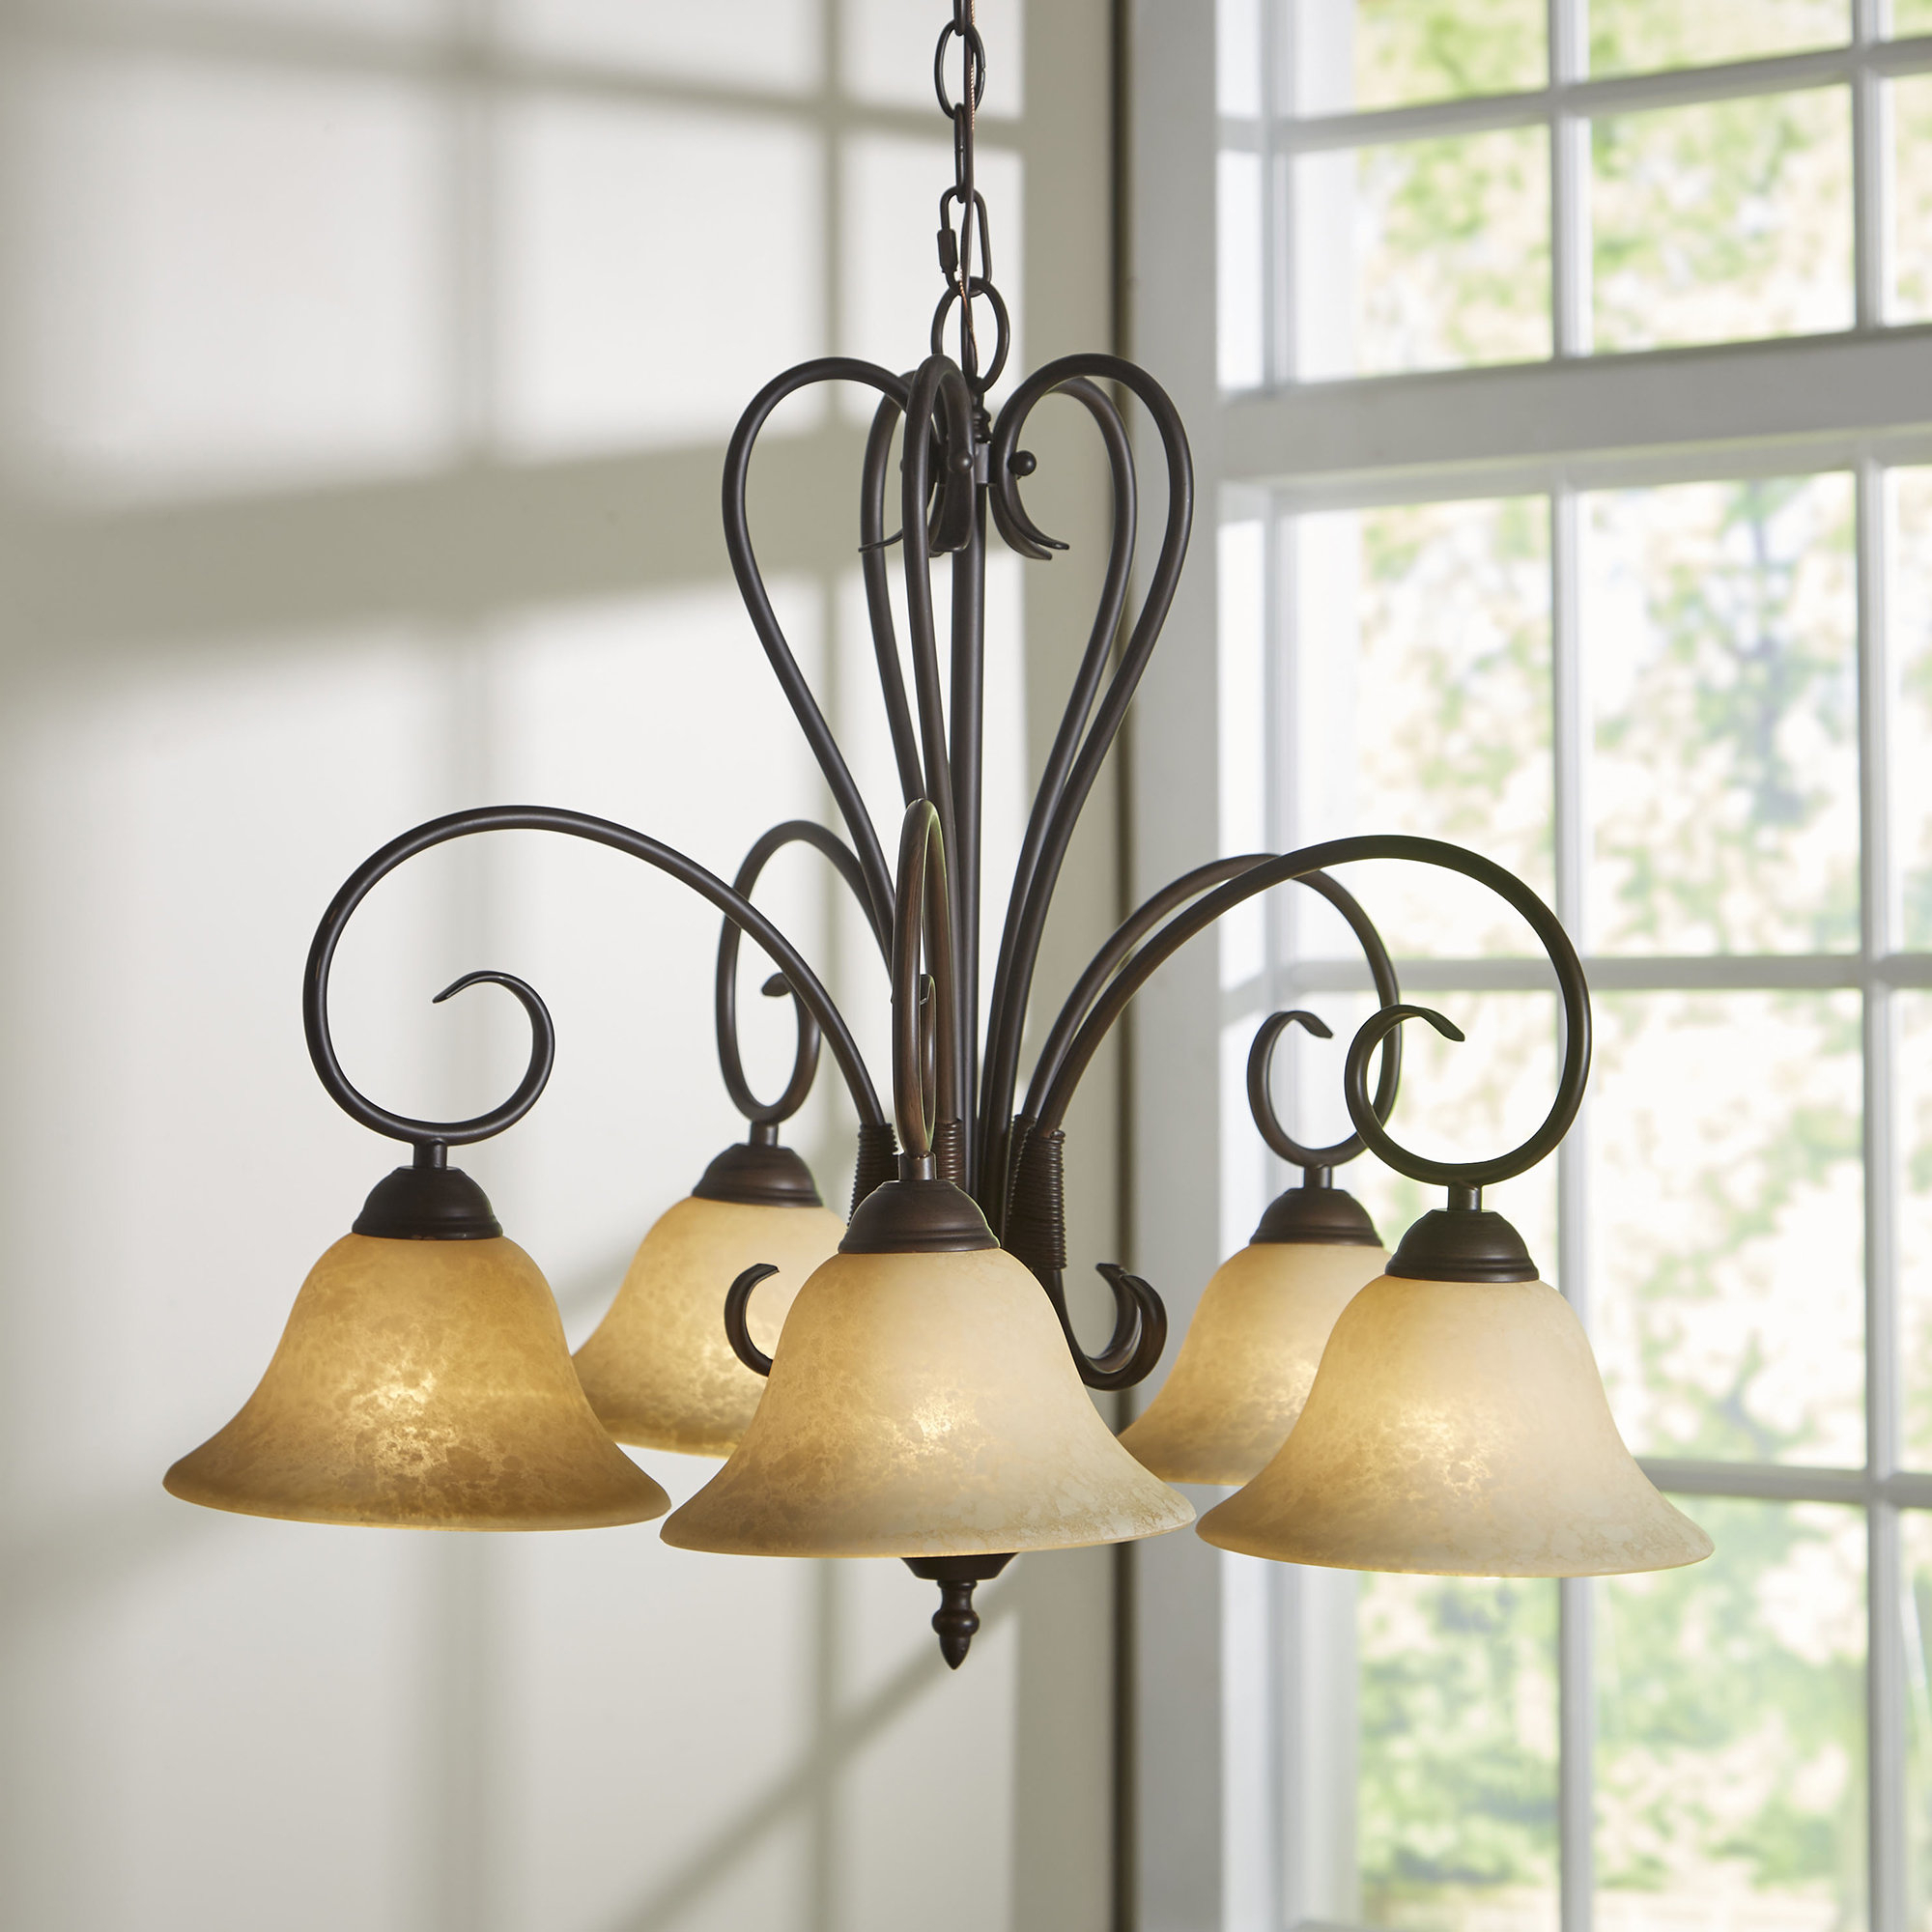 Trendy Gaines 5 Light Shaded Chandelier With Regard To Gaines 5 Light Shaded Chandeliers (View 3 of 20)